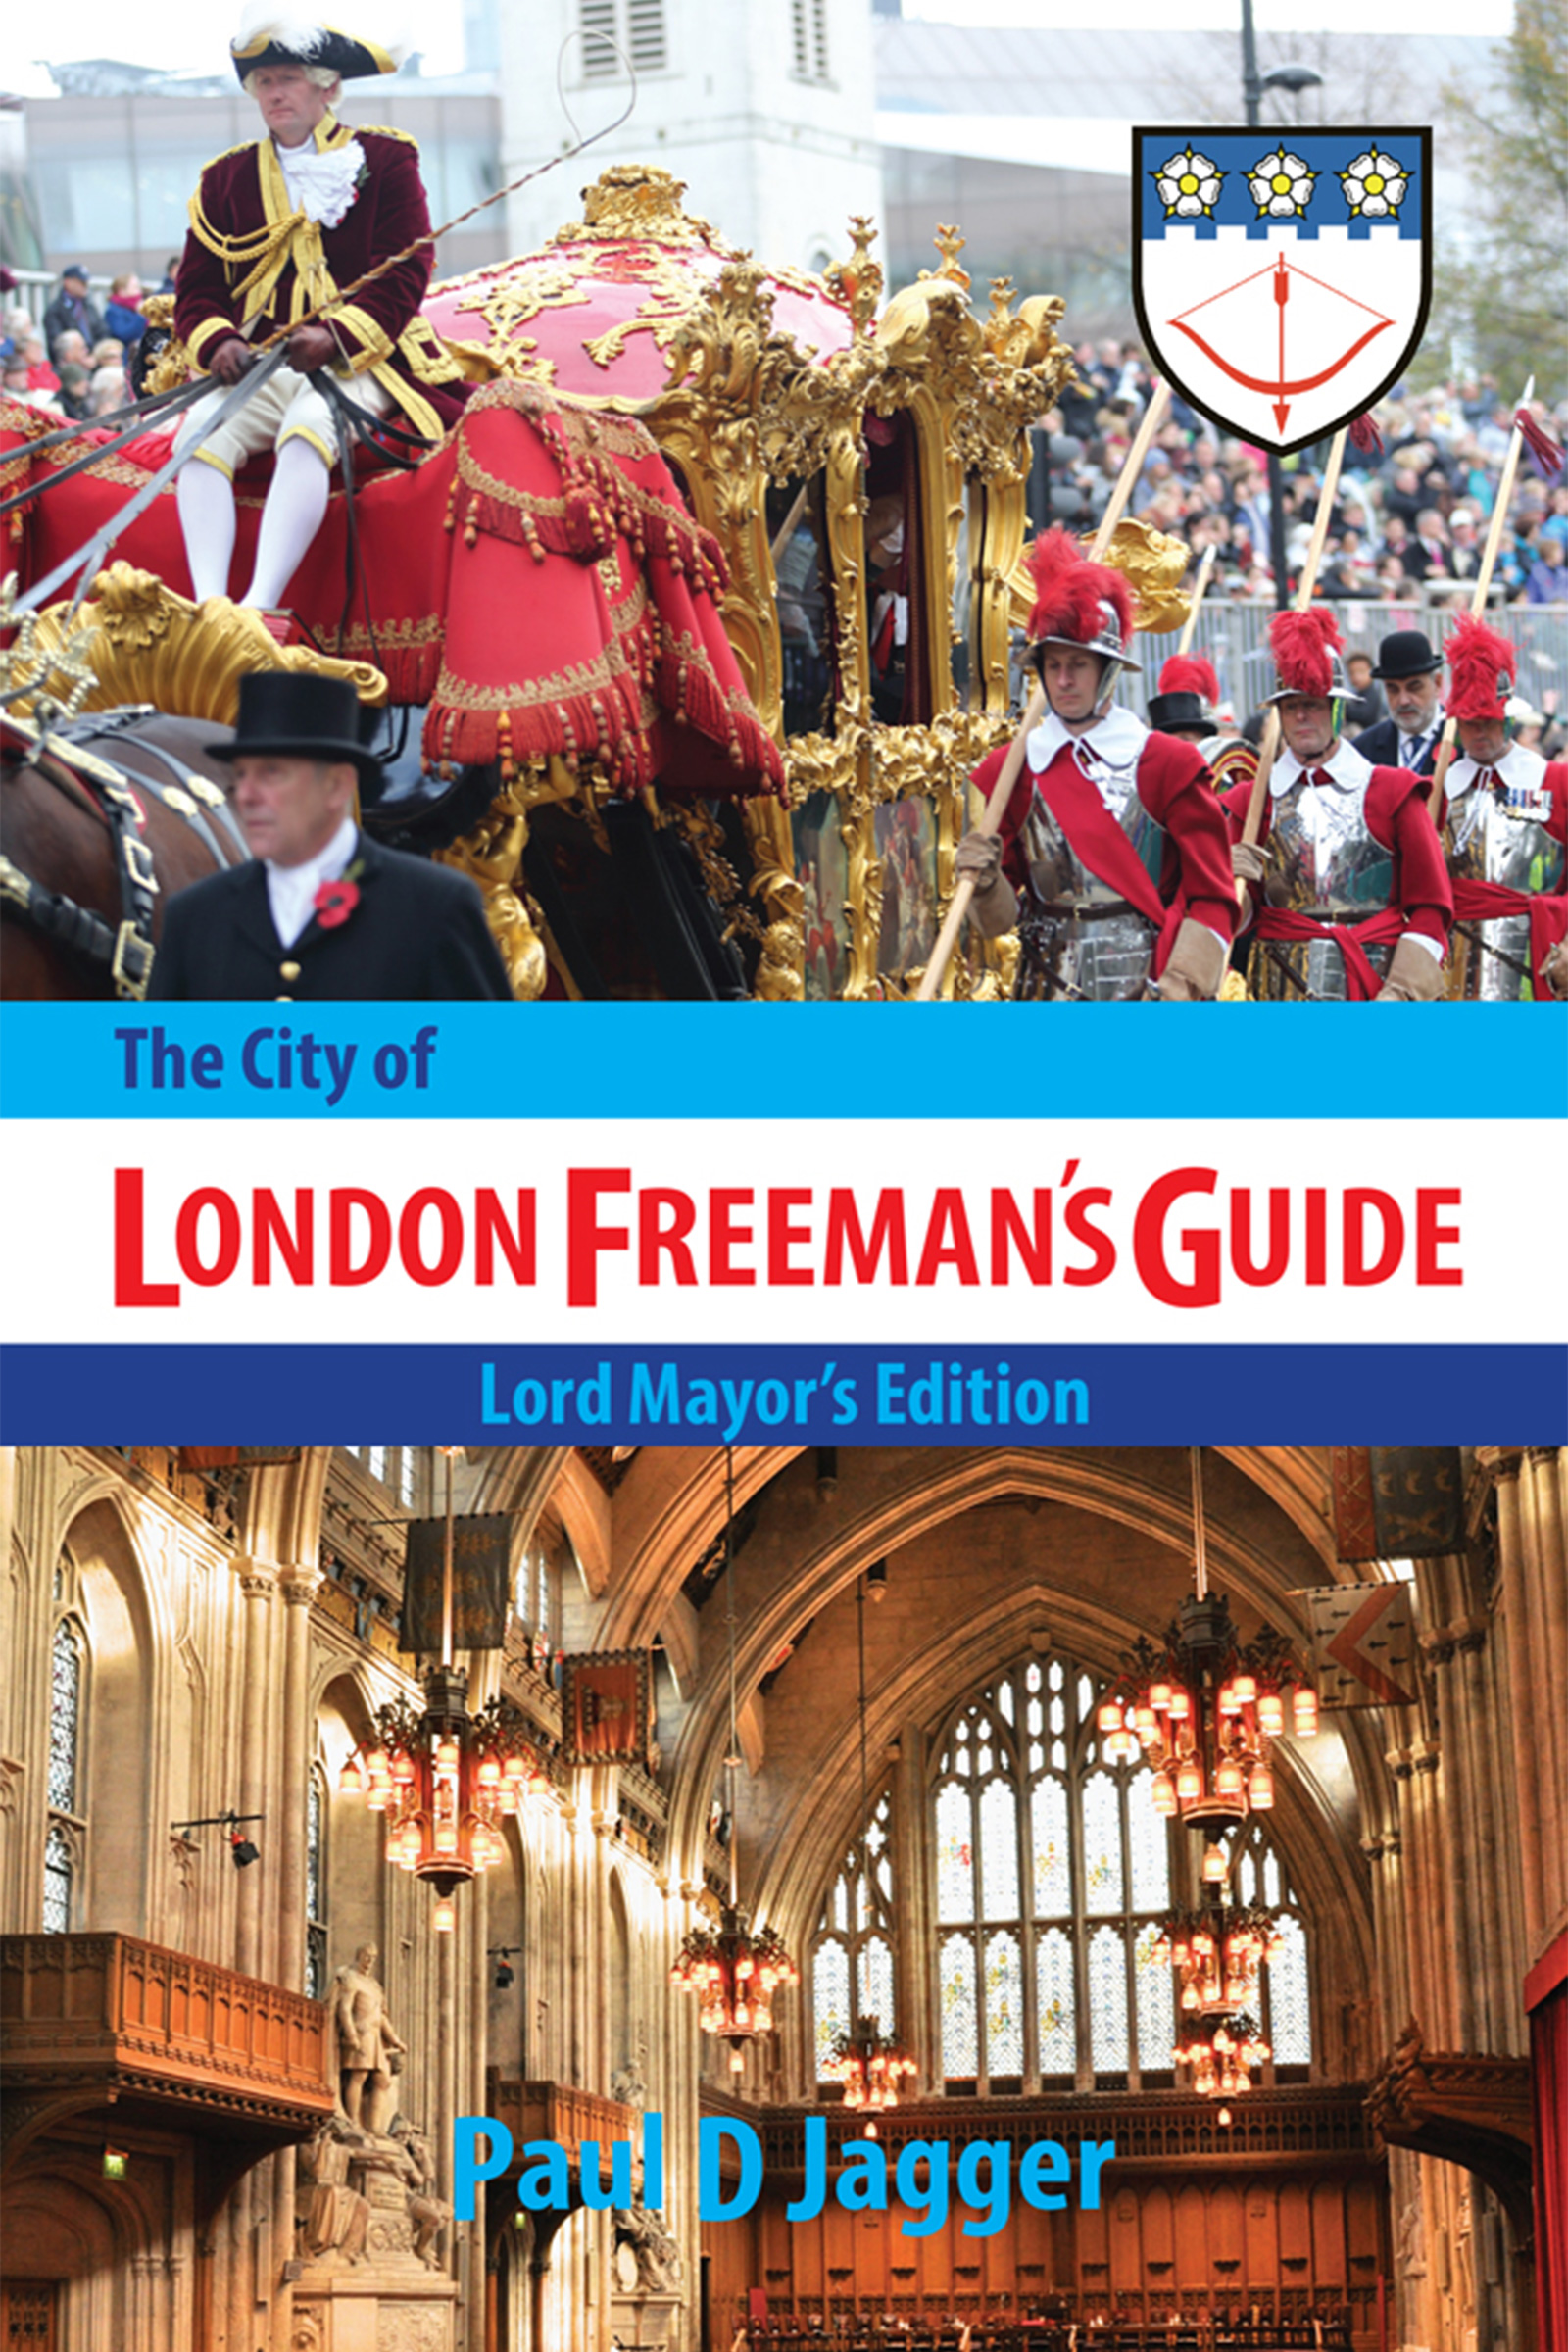 The City of London Freeman's Guide - Lord Mayor's Edition